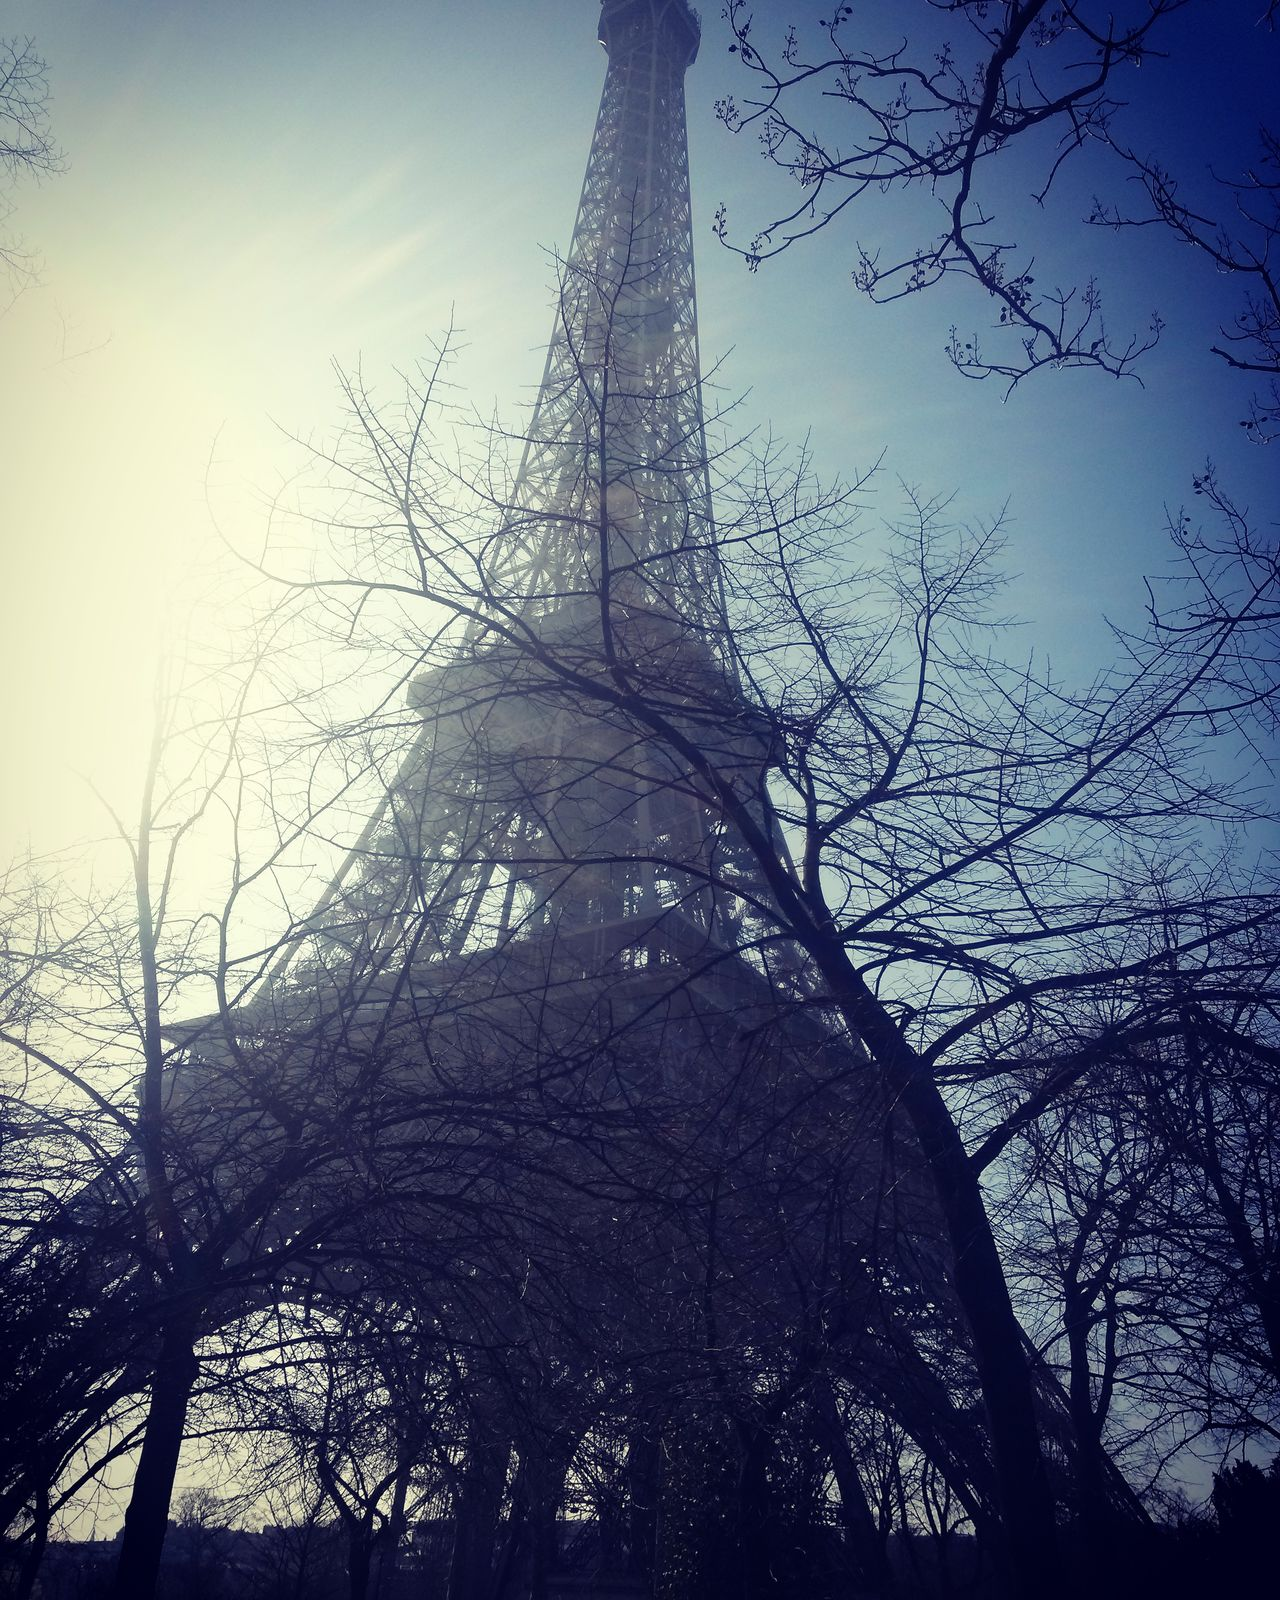 Nature Beauty In Nature Winter Trees Wintertime Winter Travel Tourism Tourist Attraction  Travel Photography Historical Building Building Exterior Travel Destinations Cloud - Sky Built Structure Outdoors Branch Low Angle View Paris France Eiffel Tower Sky Tree Architecture Art Day